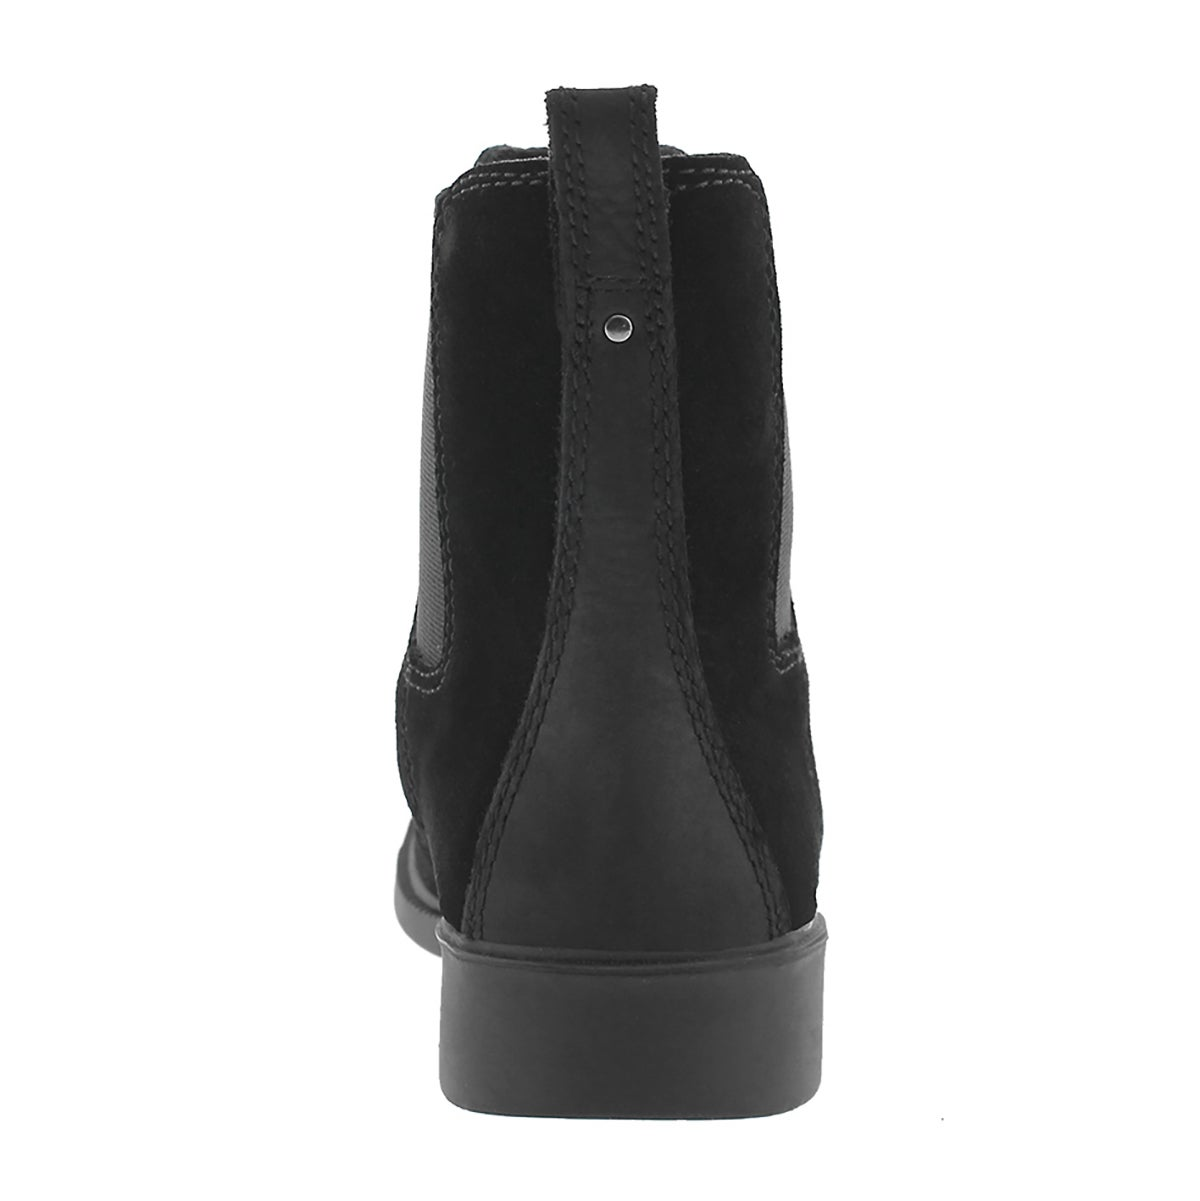 Lds Bria black wtpf chelsea boot